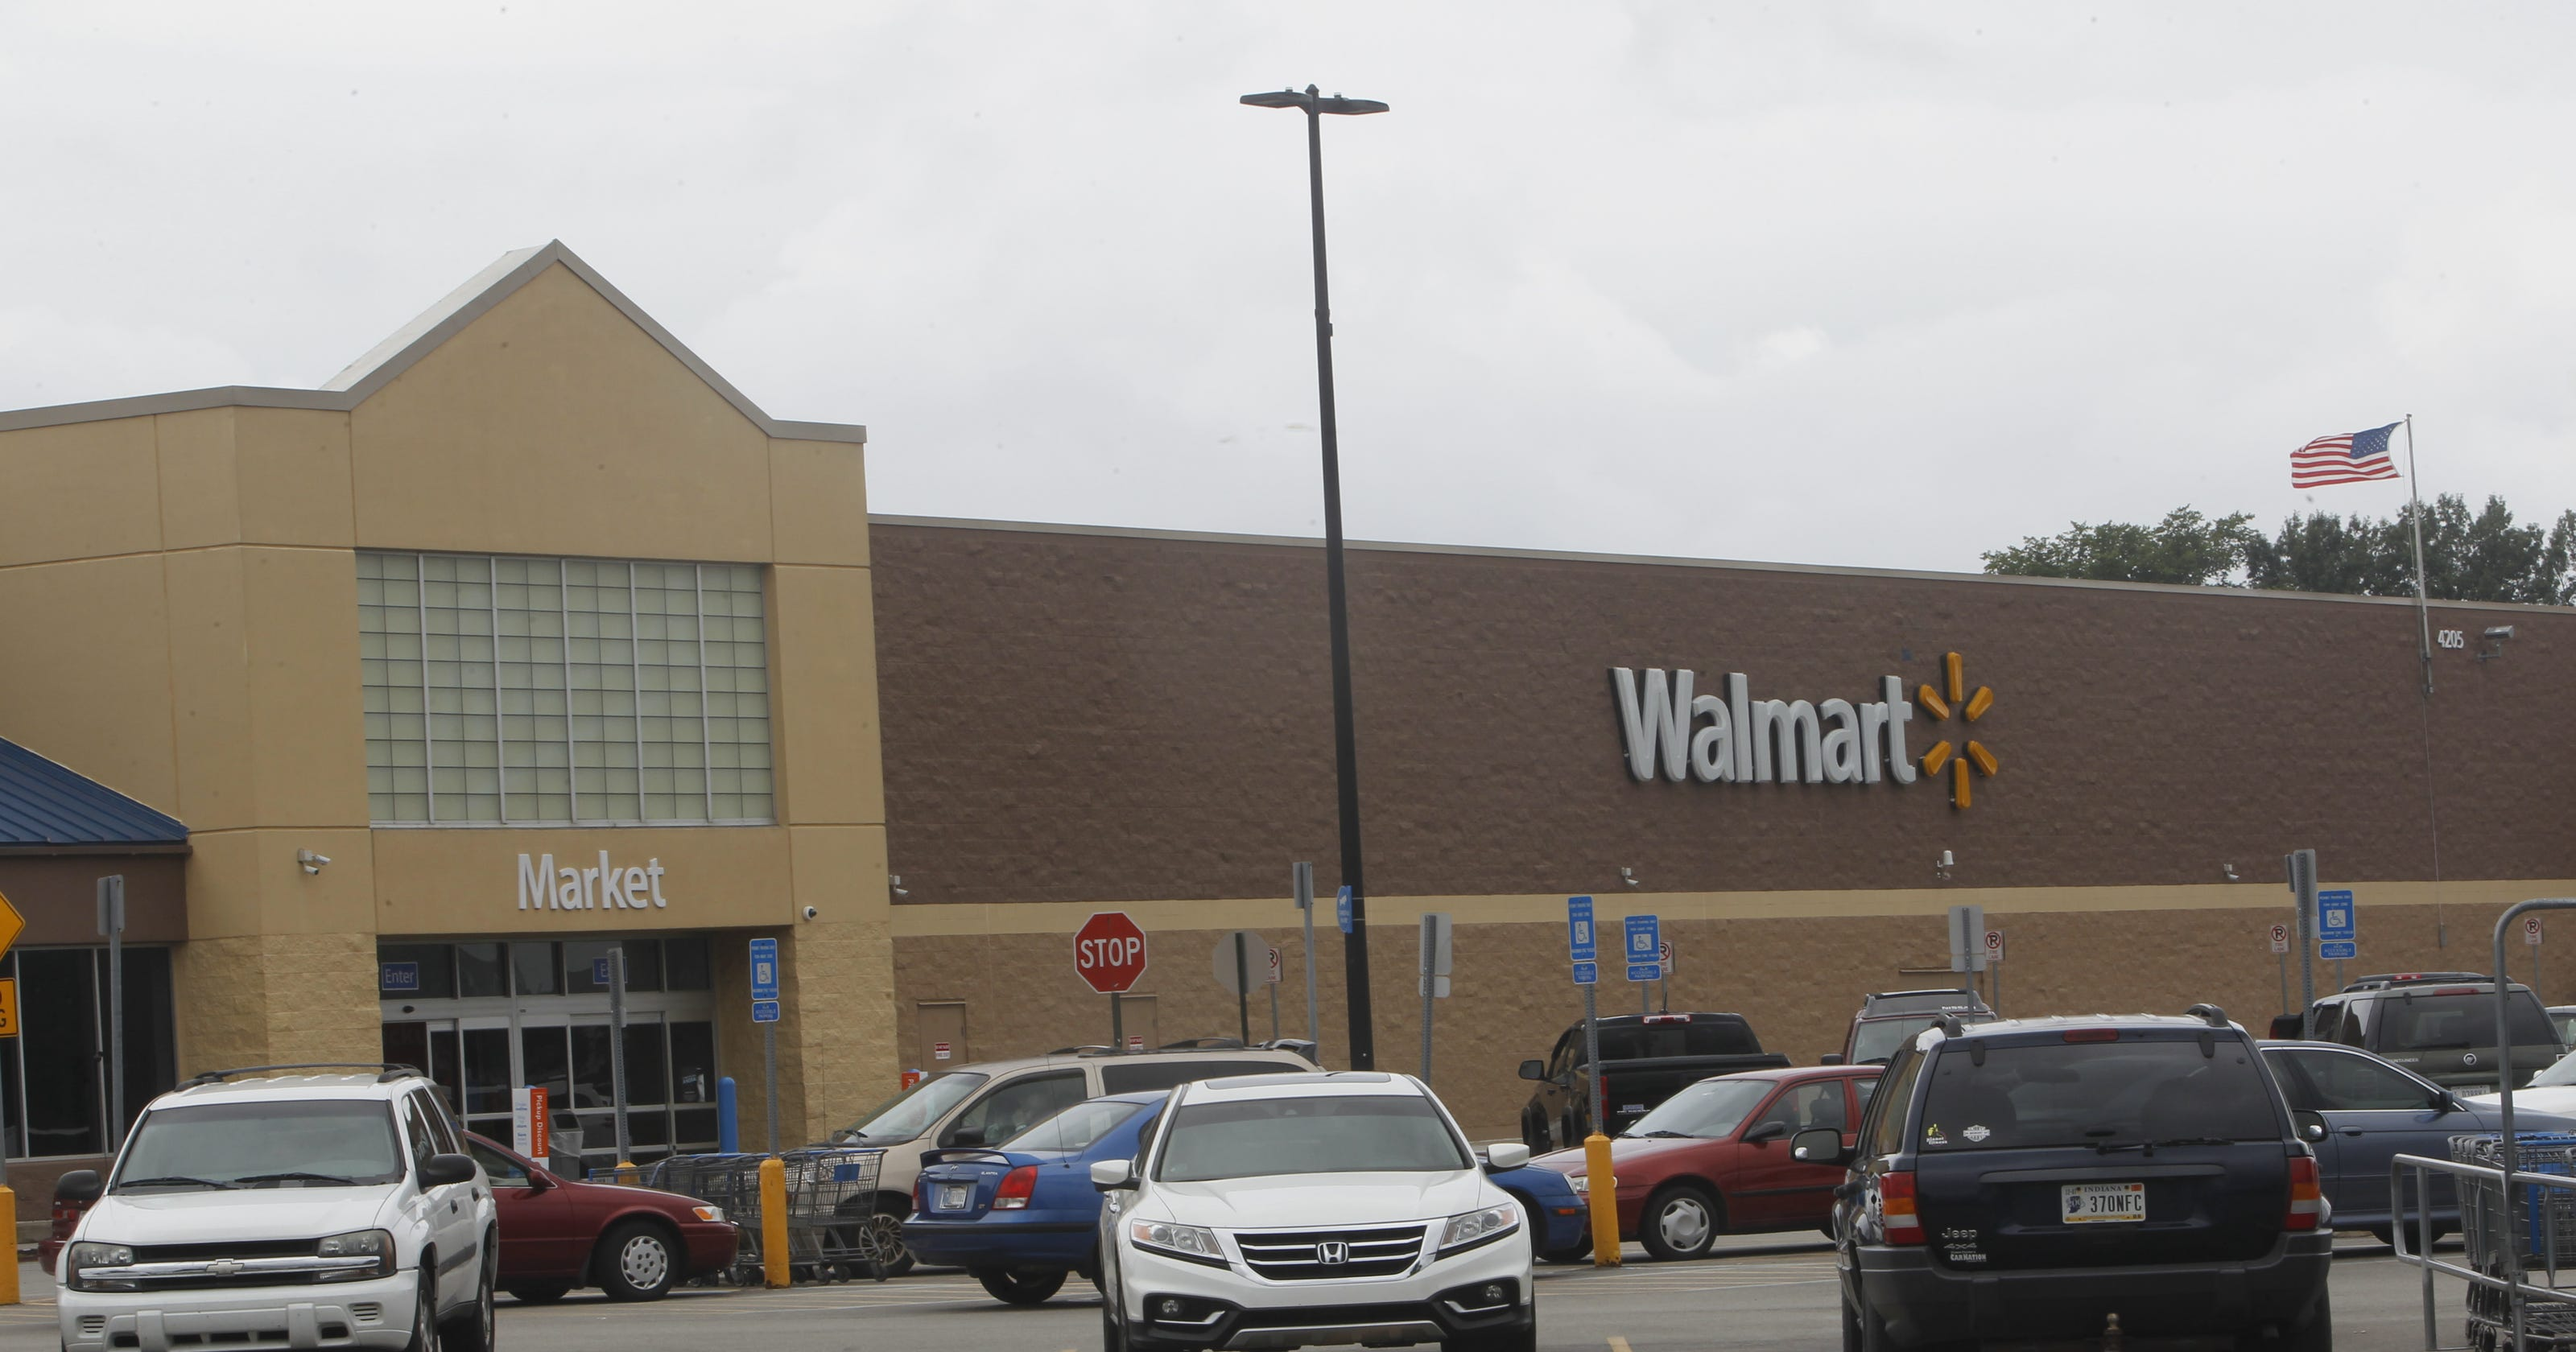 At Walmart, $400 and 6 hours will make that shoplifting charge go away